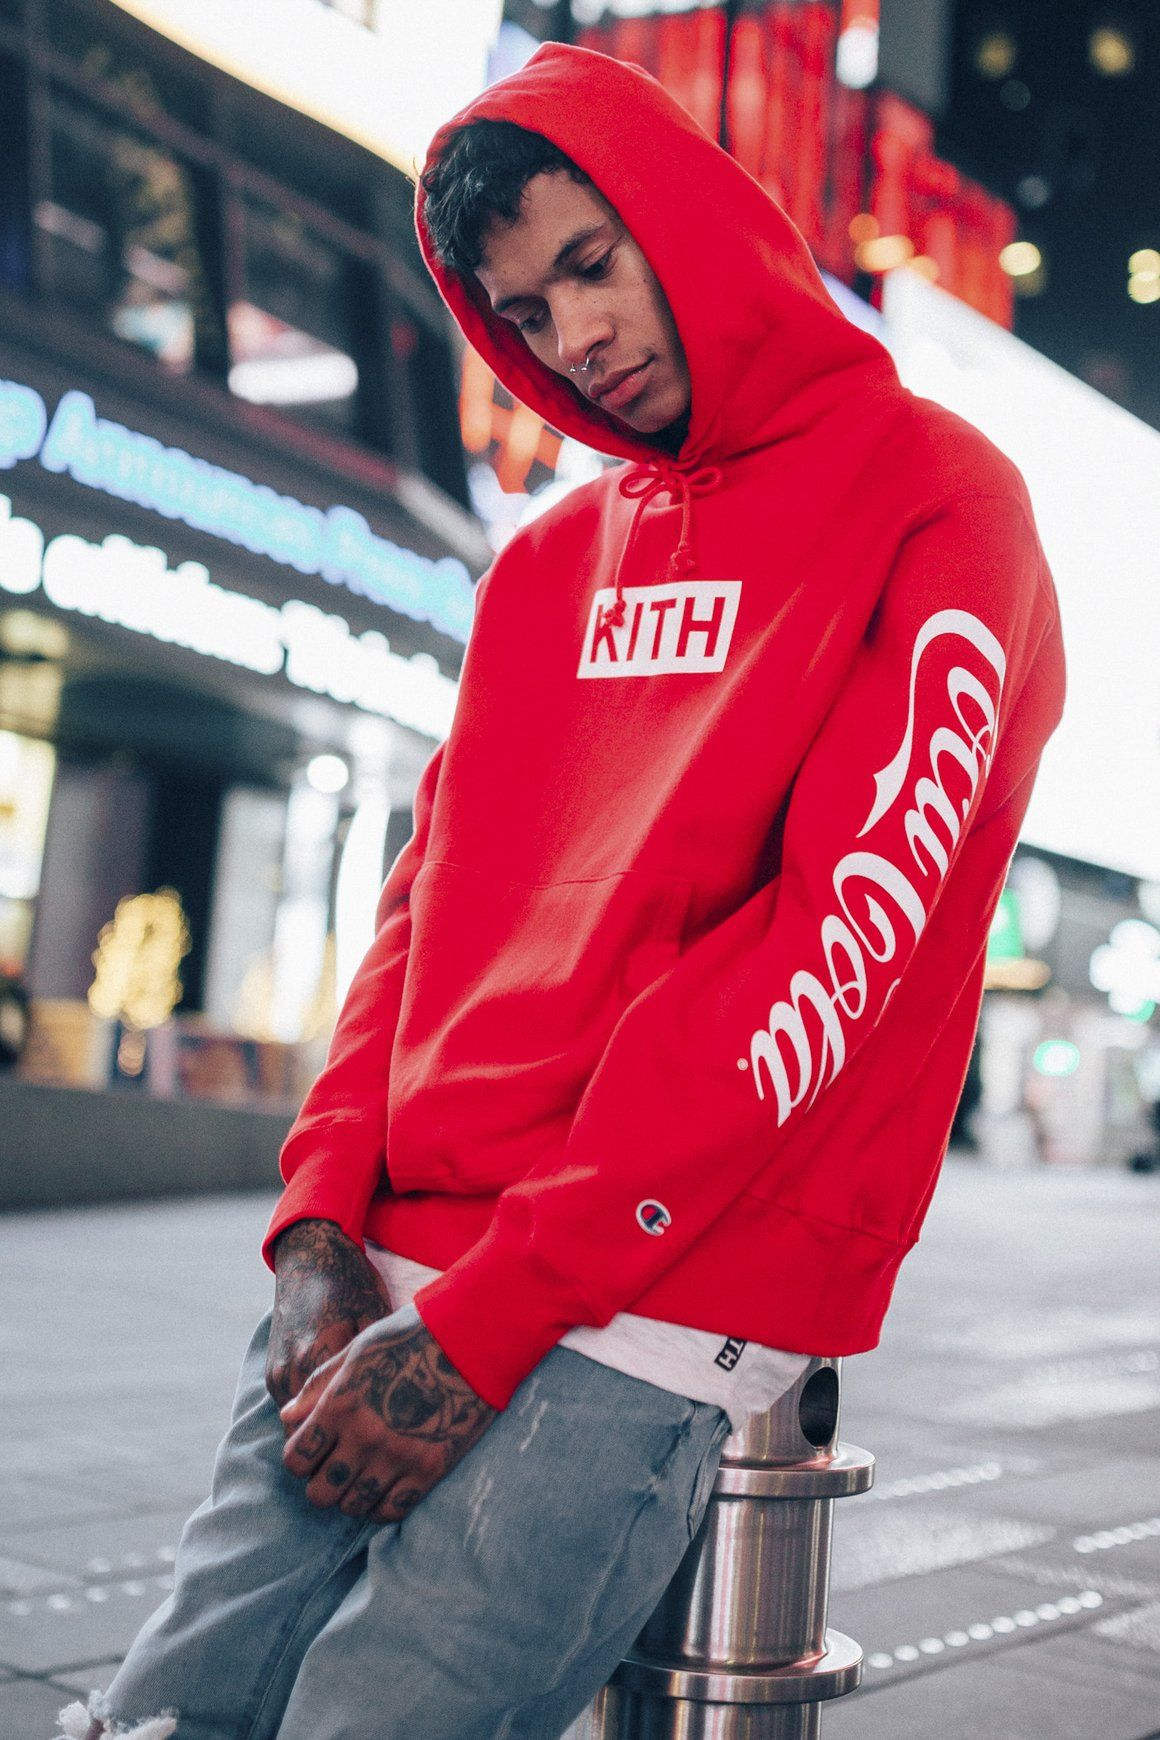 c89b21c2 KITH x Coca-Cola   STAG Style!   Hoodie outfit, Coca cola ...